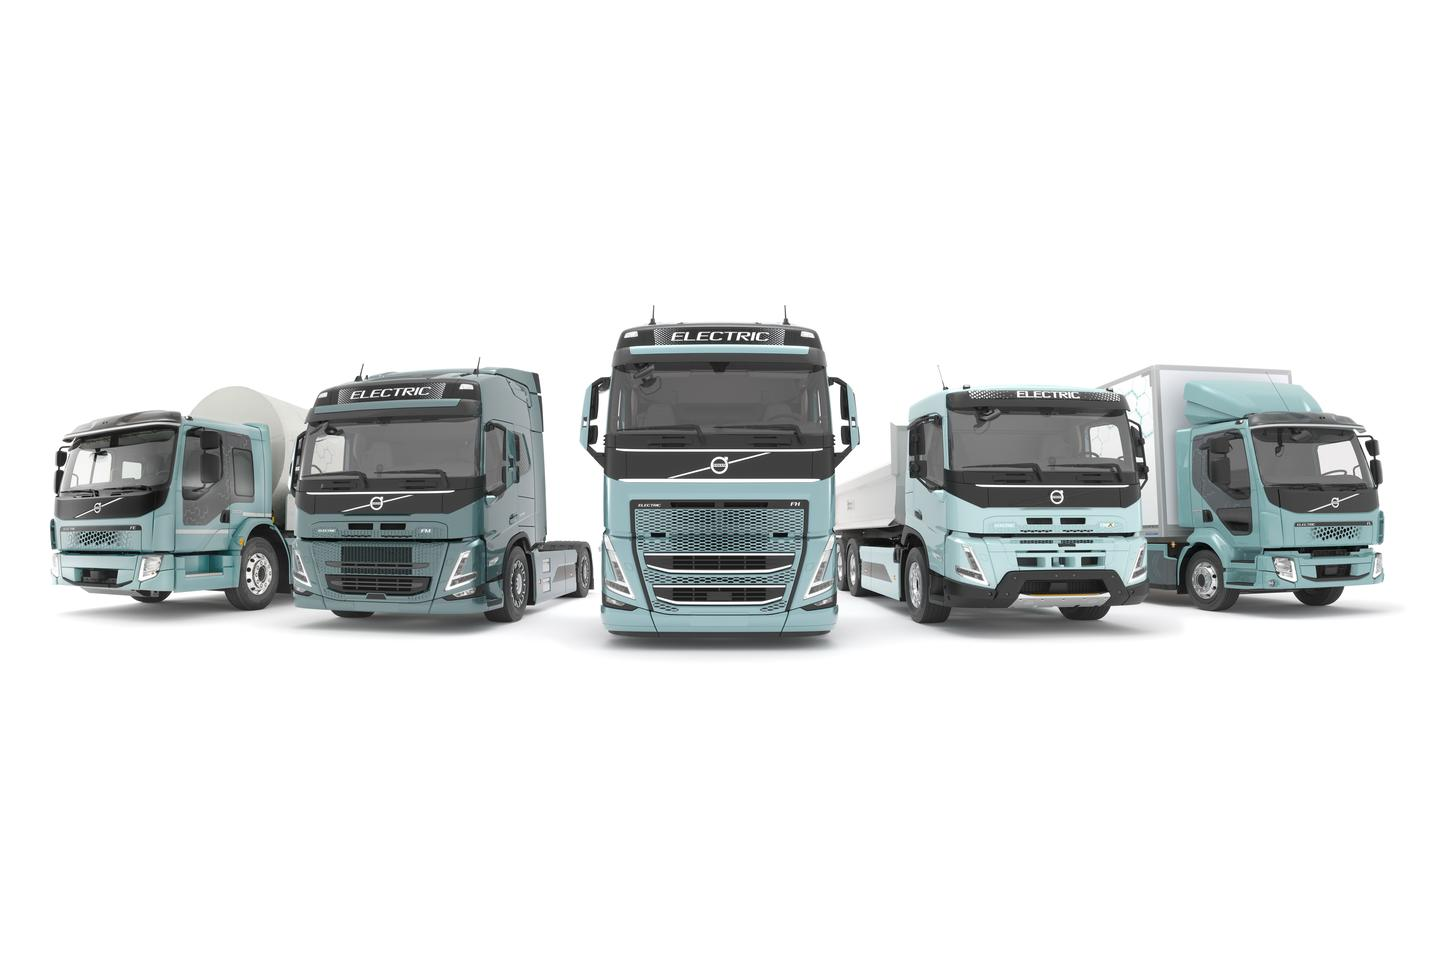 The order books for the complete range of electric heavy duty Volvo Trucks opens in 2021, with volume production set to start the following year